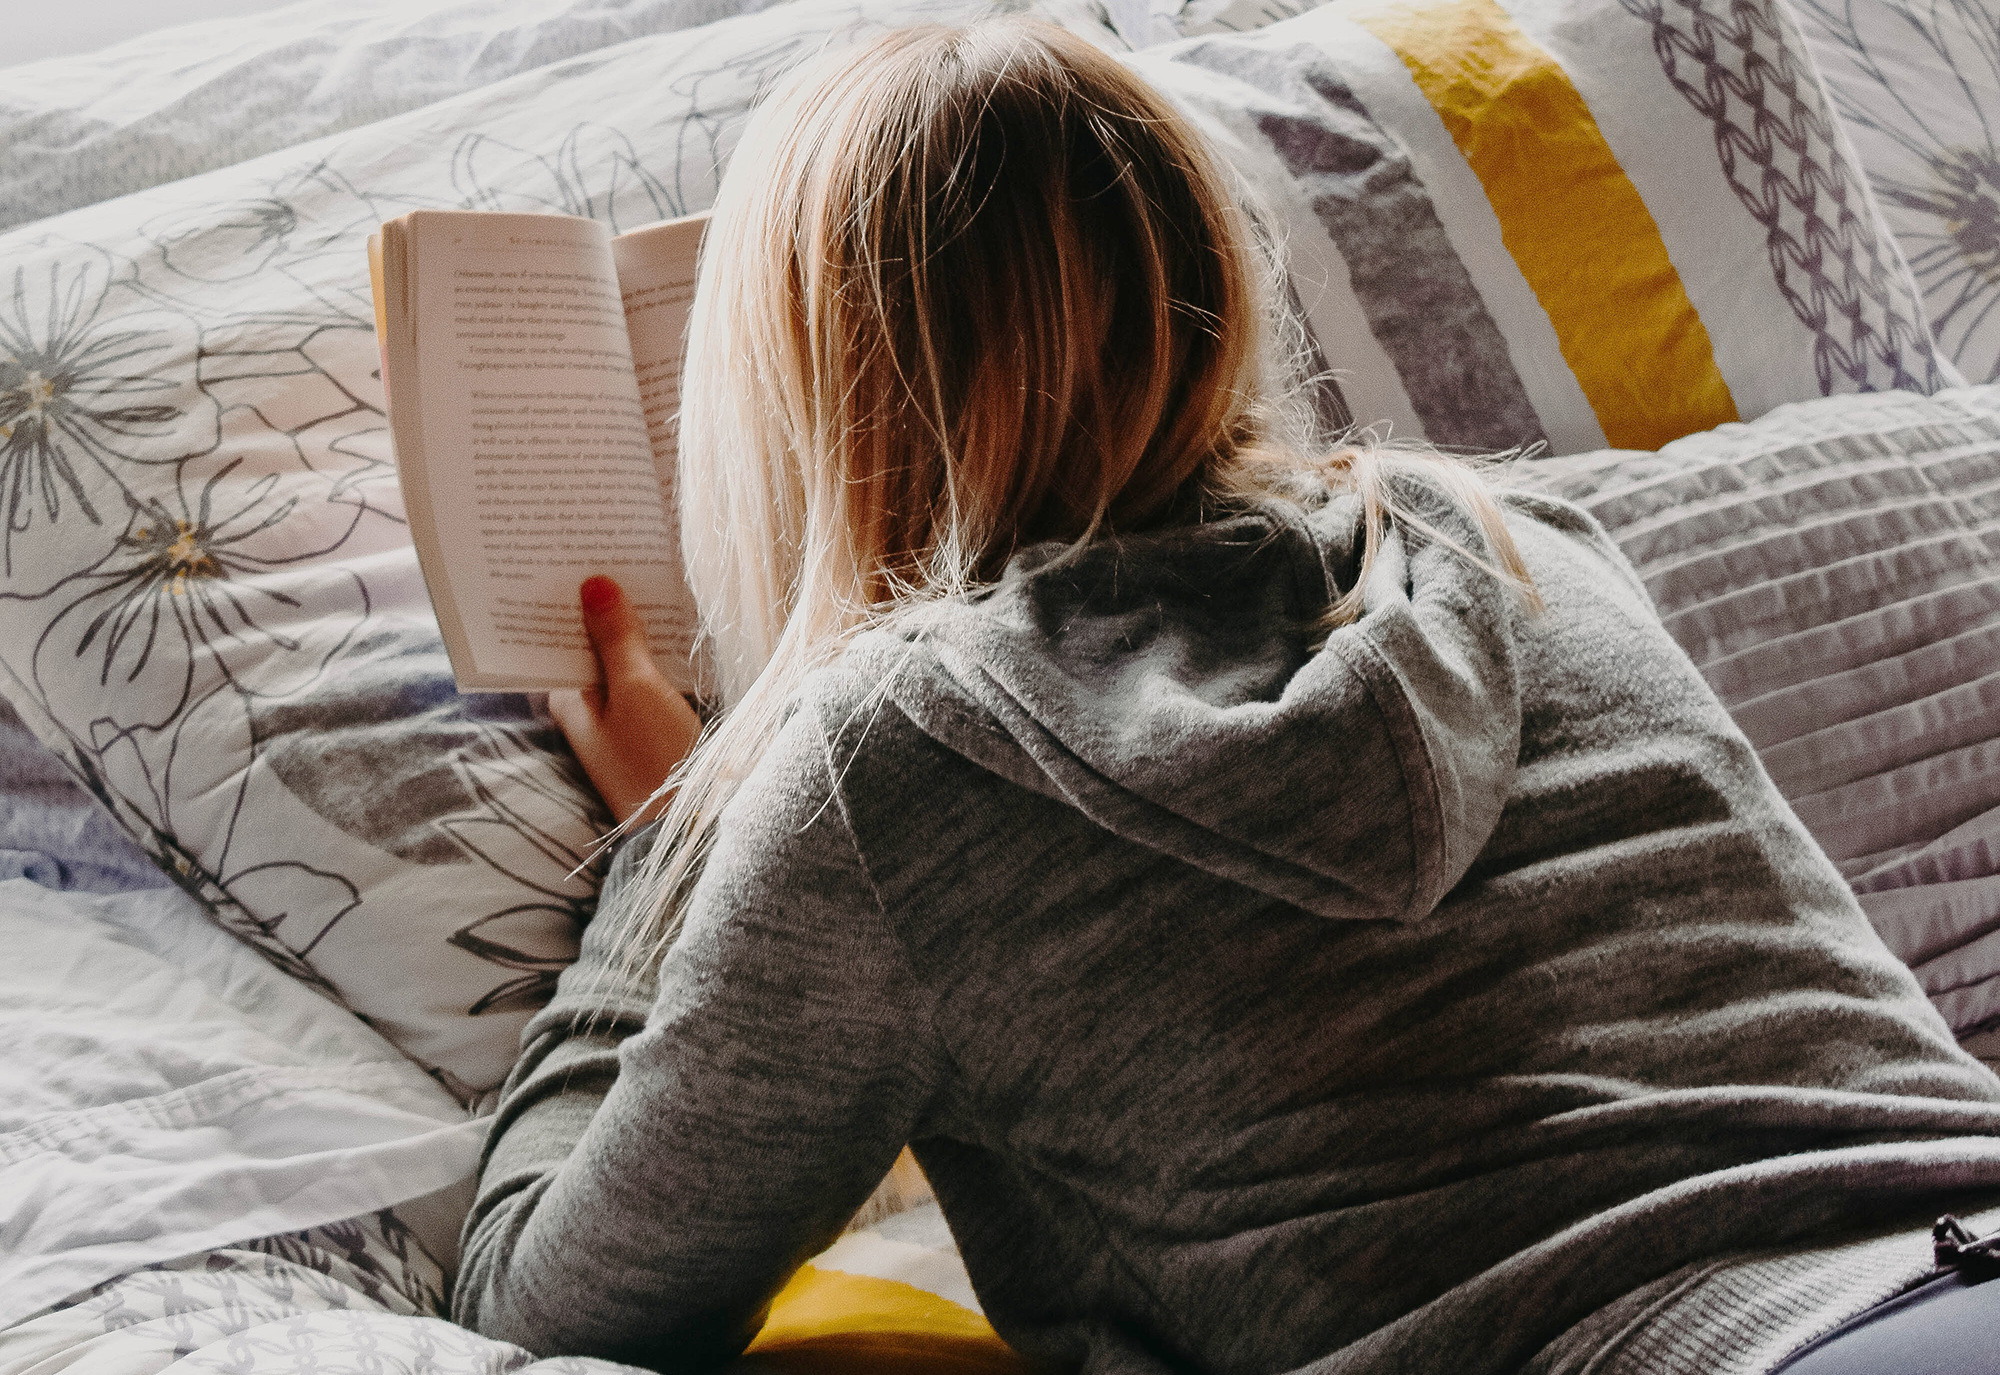 Teen reading book on bed.